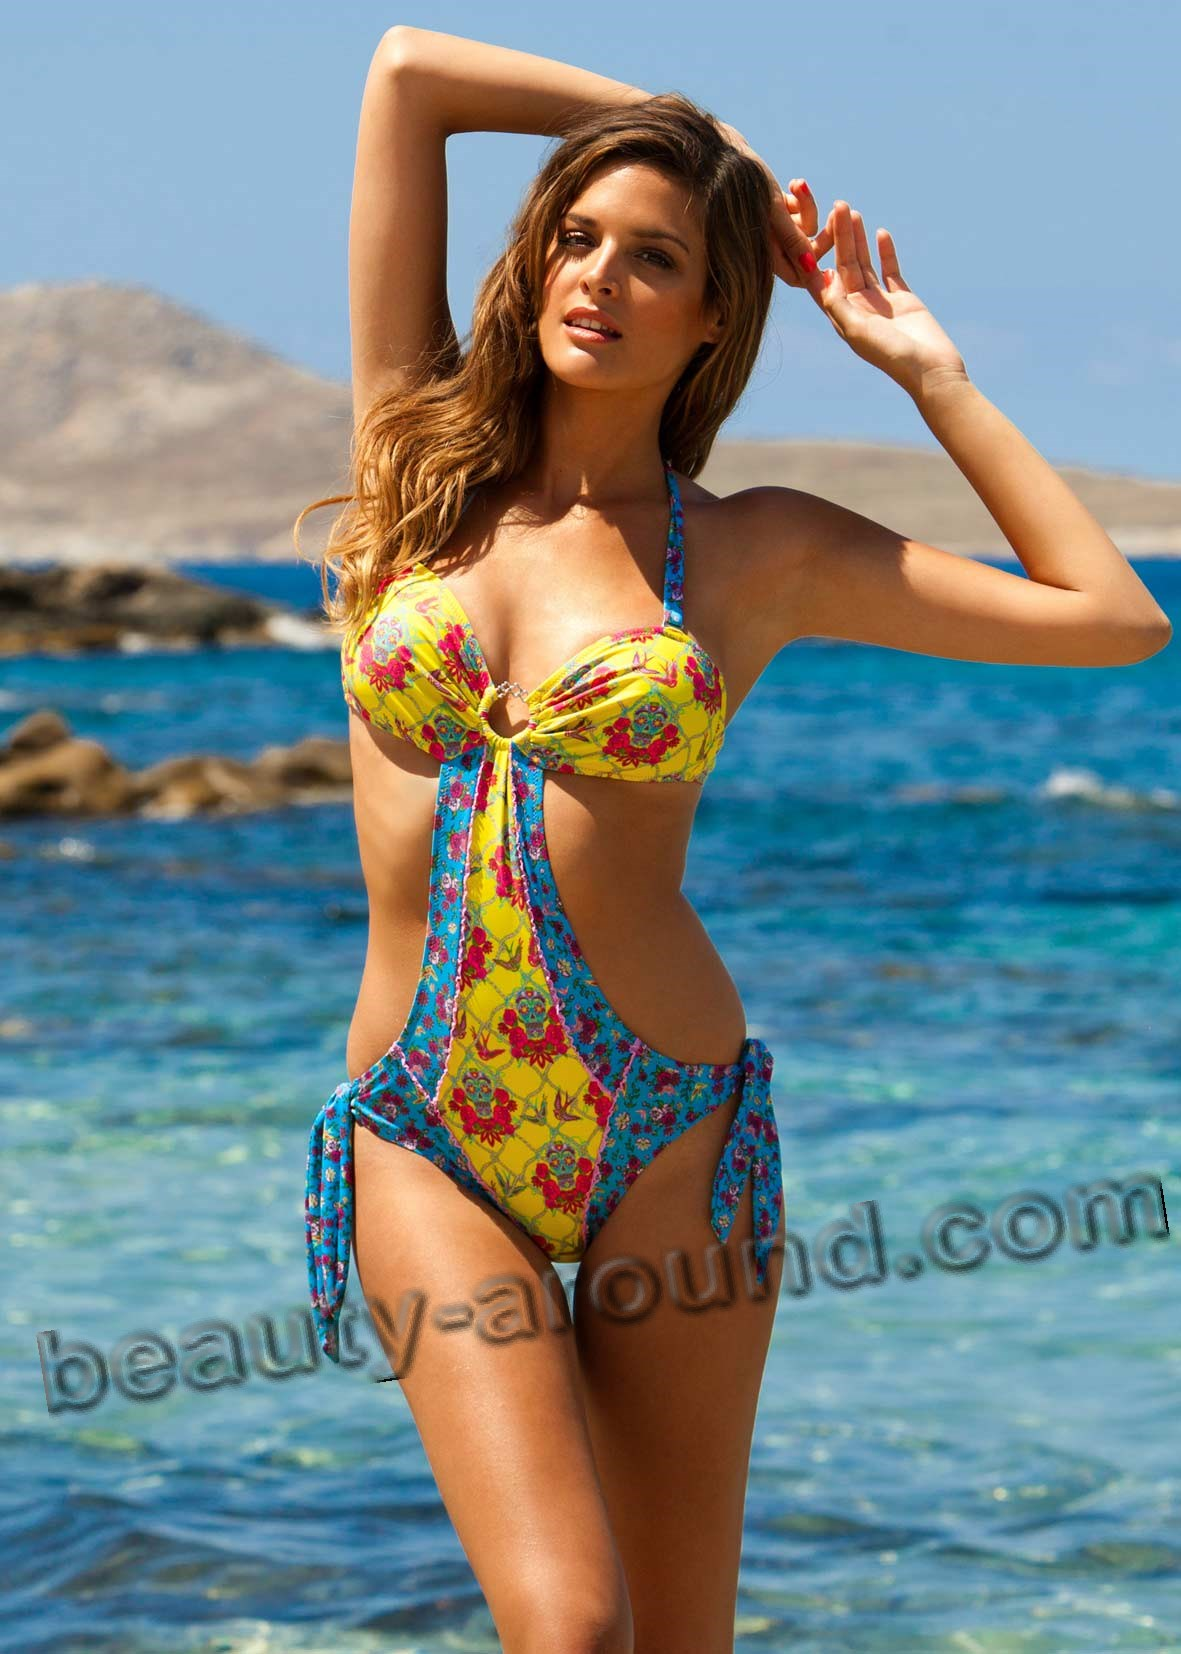 Stylish colorful swimsuit photo